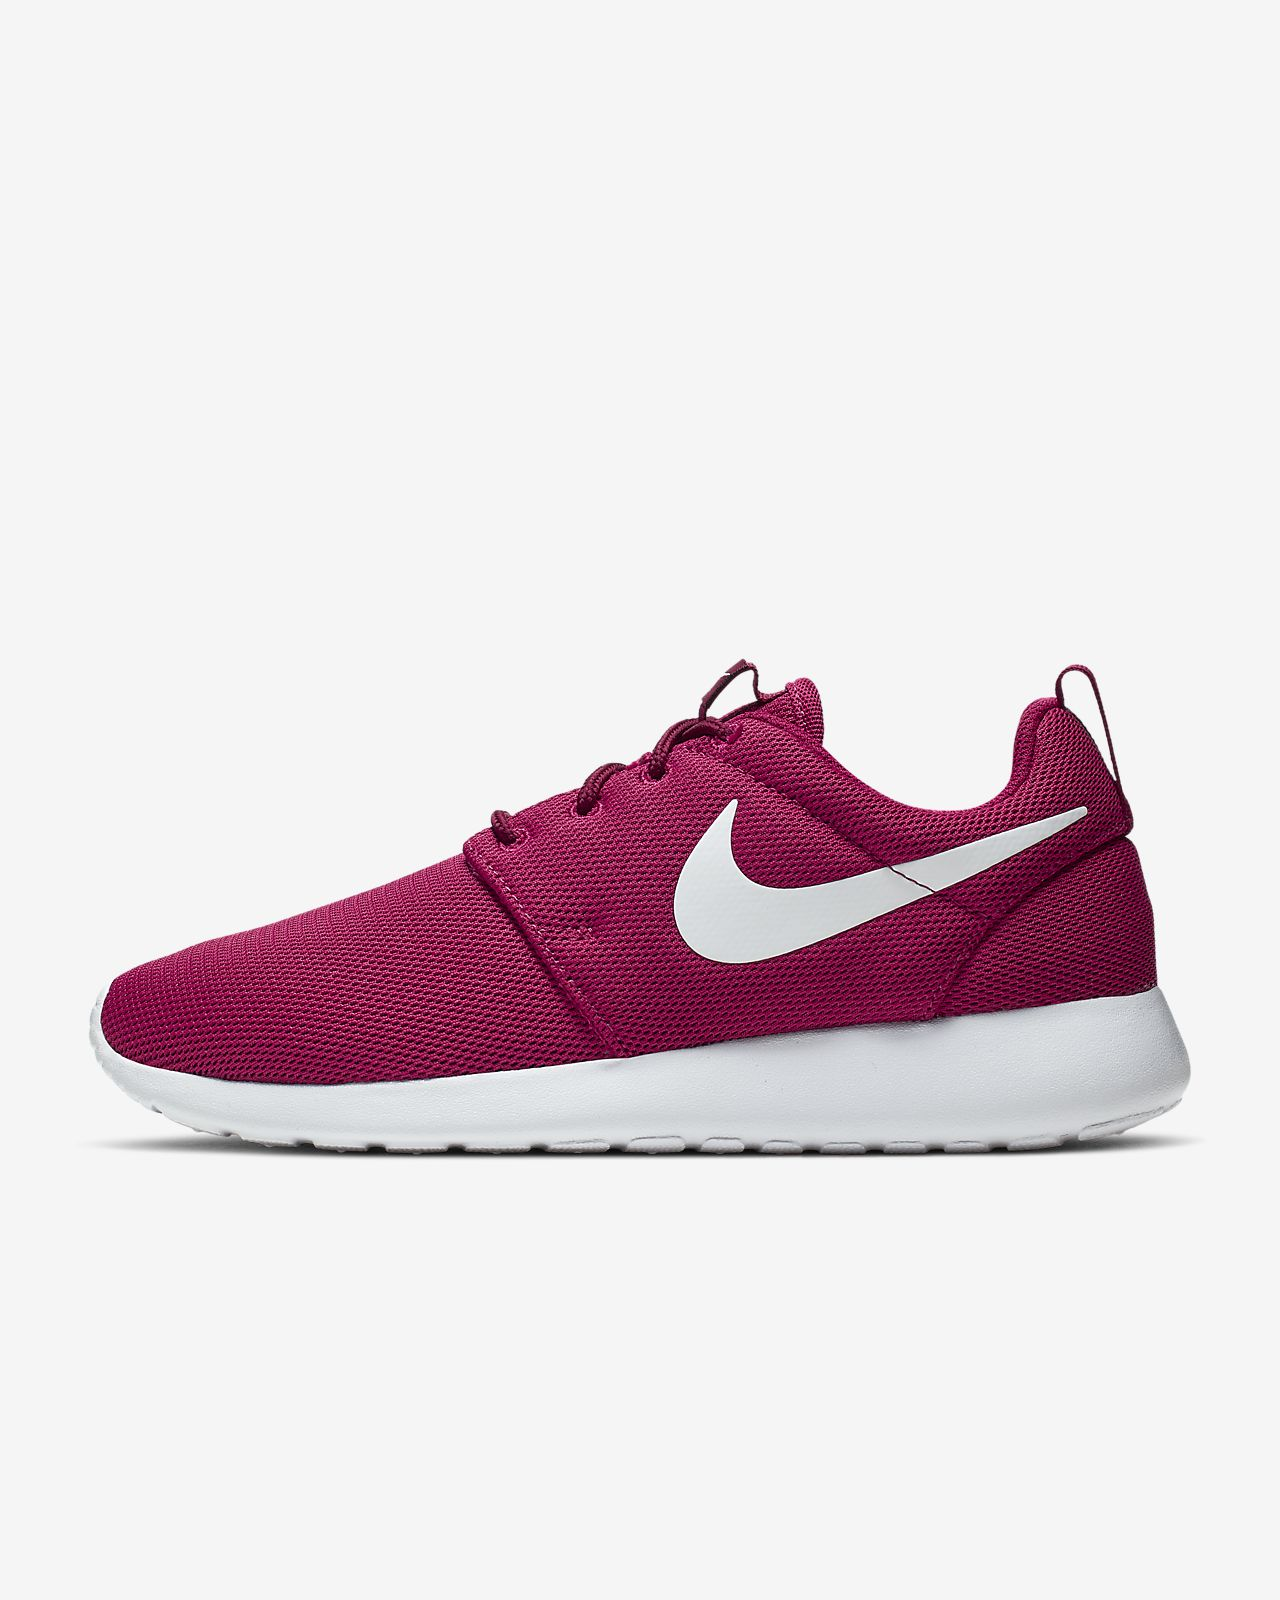 the latest e343a deb6d Nike Roshe One Women's Shoe